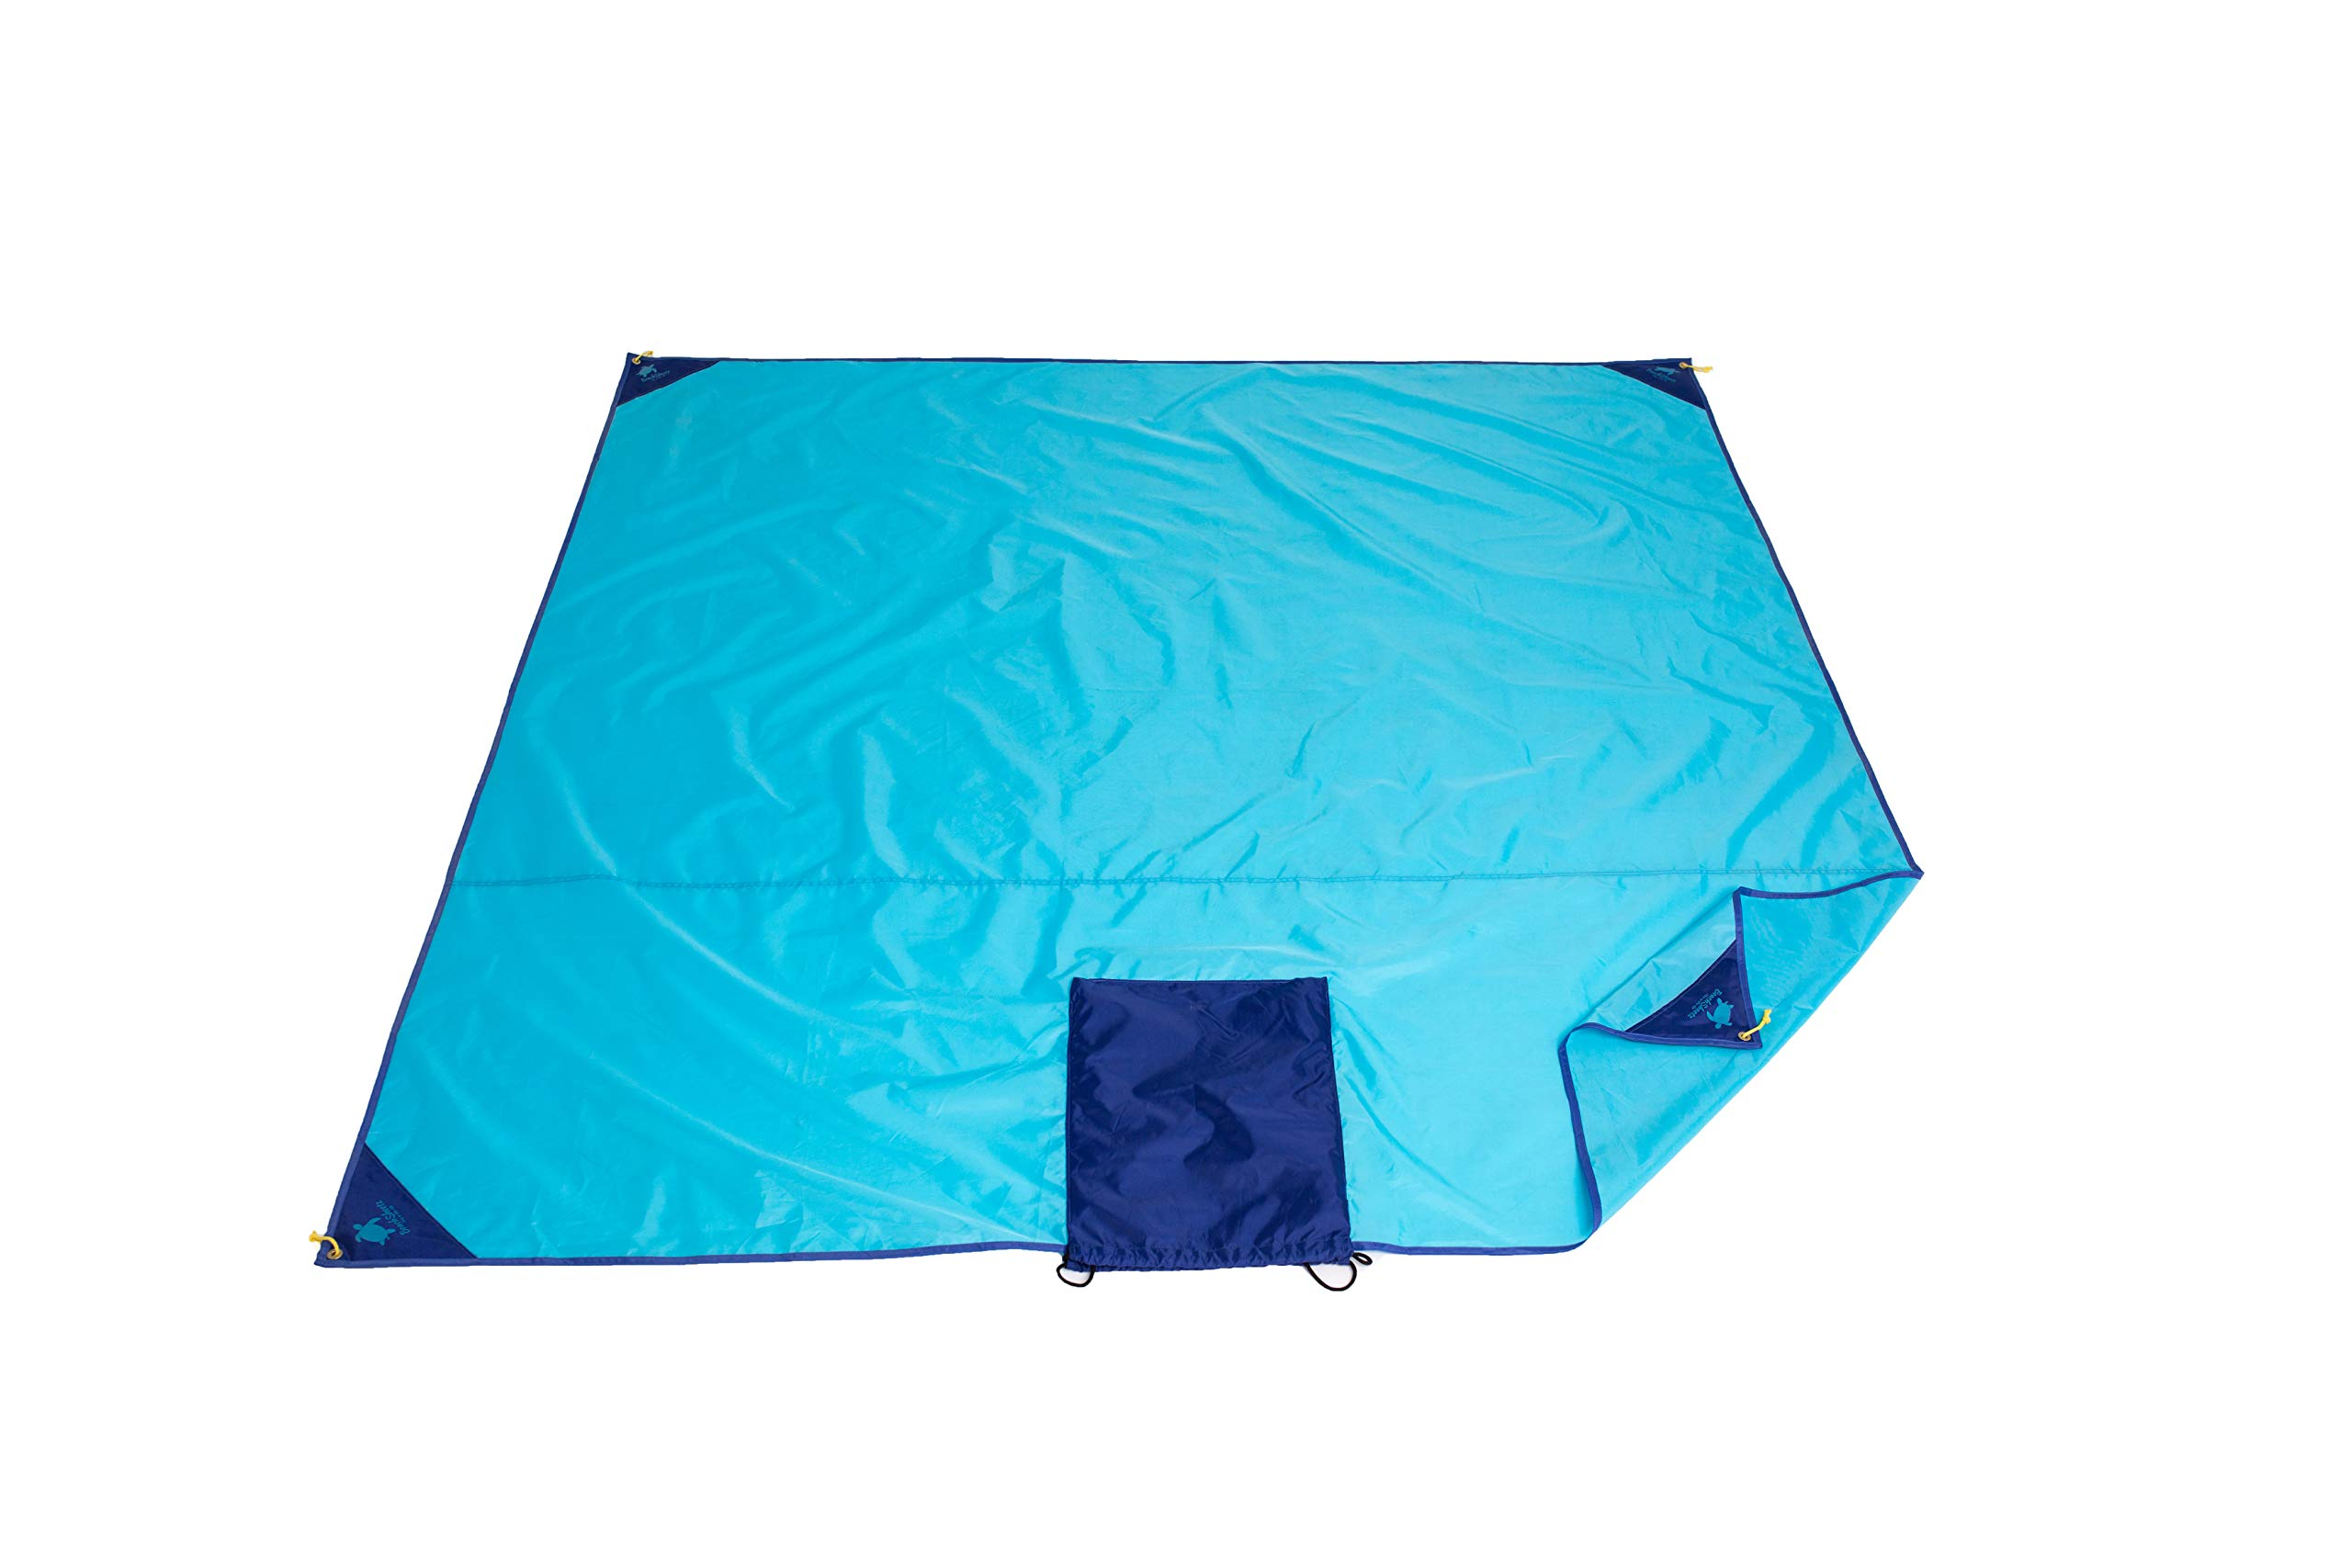 BeachSheetz - Great for The Beach, Picnics, Camping, Hiking, Sporting Events, Backyard Play, Tailgate Parties, Outdoor Concerts, Hunting, and Even a Baby's Crawling Blanket!